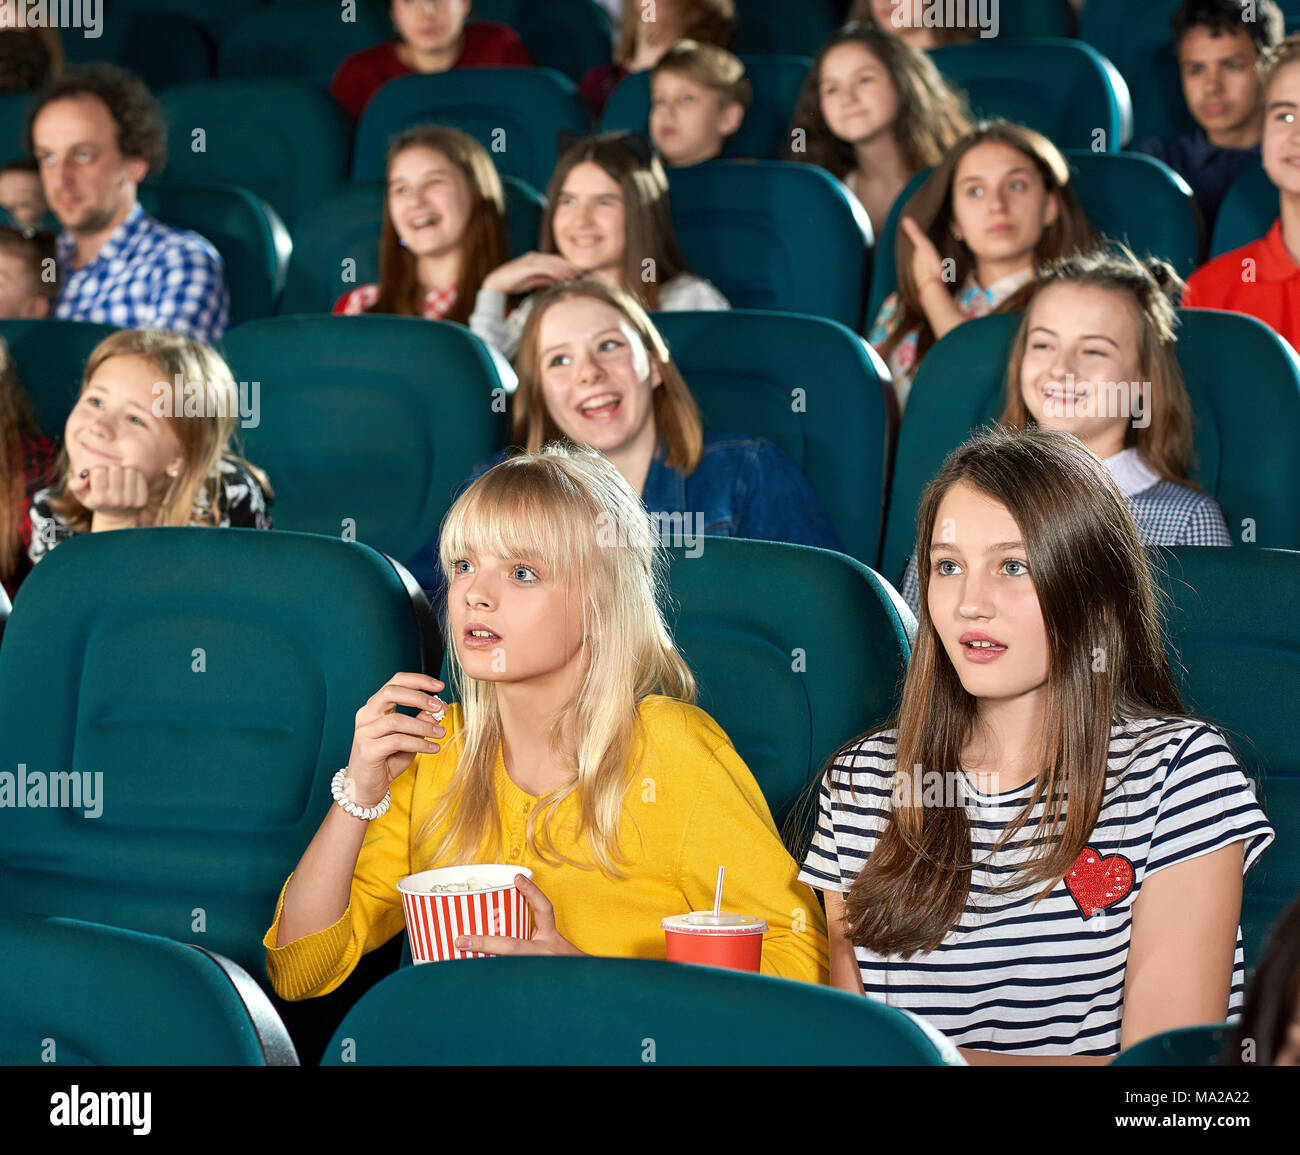 Exited girls watching movie in the cinema. Children ooking very interested, drinking fizzy drinks, sitting on other children's background. They wearing trendy colorful clothes. looking frightened. - Stock Image